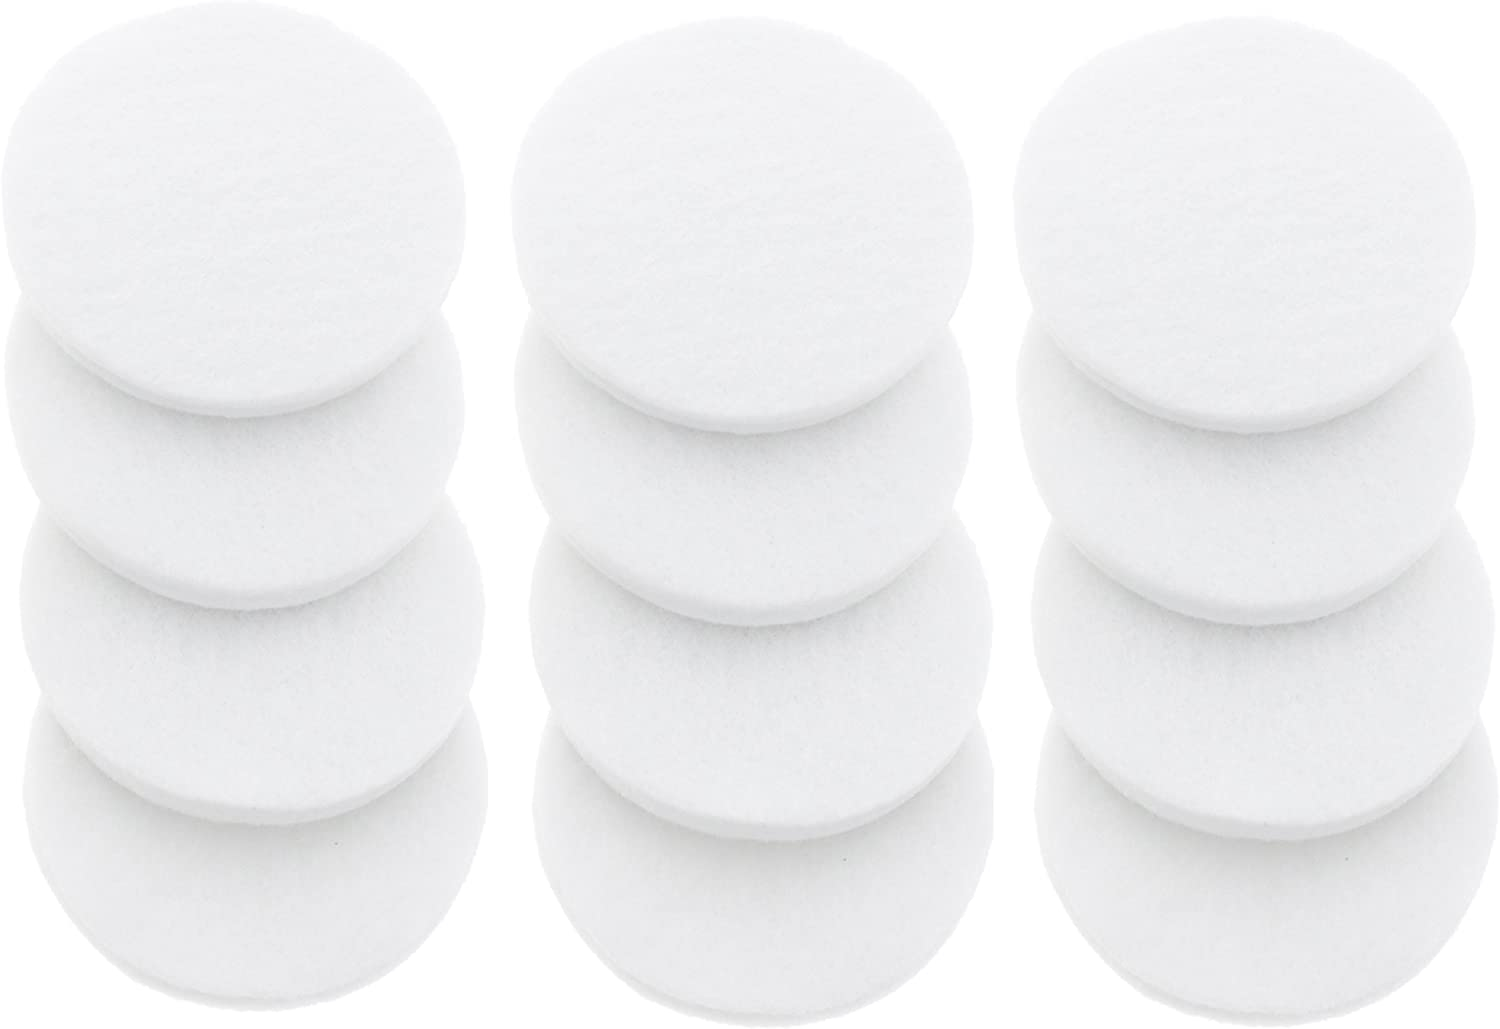 12 PACK Replacement Coffee Filters für die Toddy Cold Brew System/Toddy Maker durch Essential Values